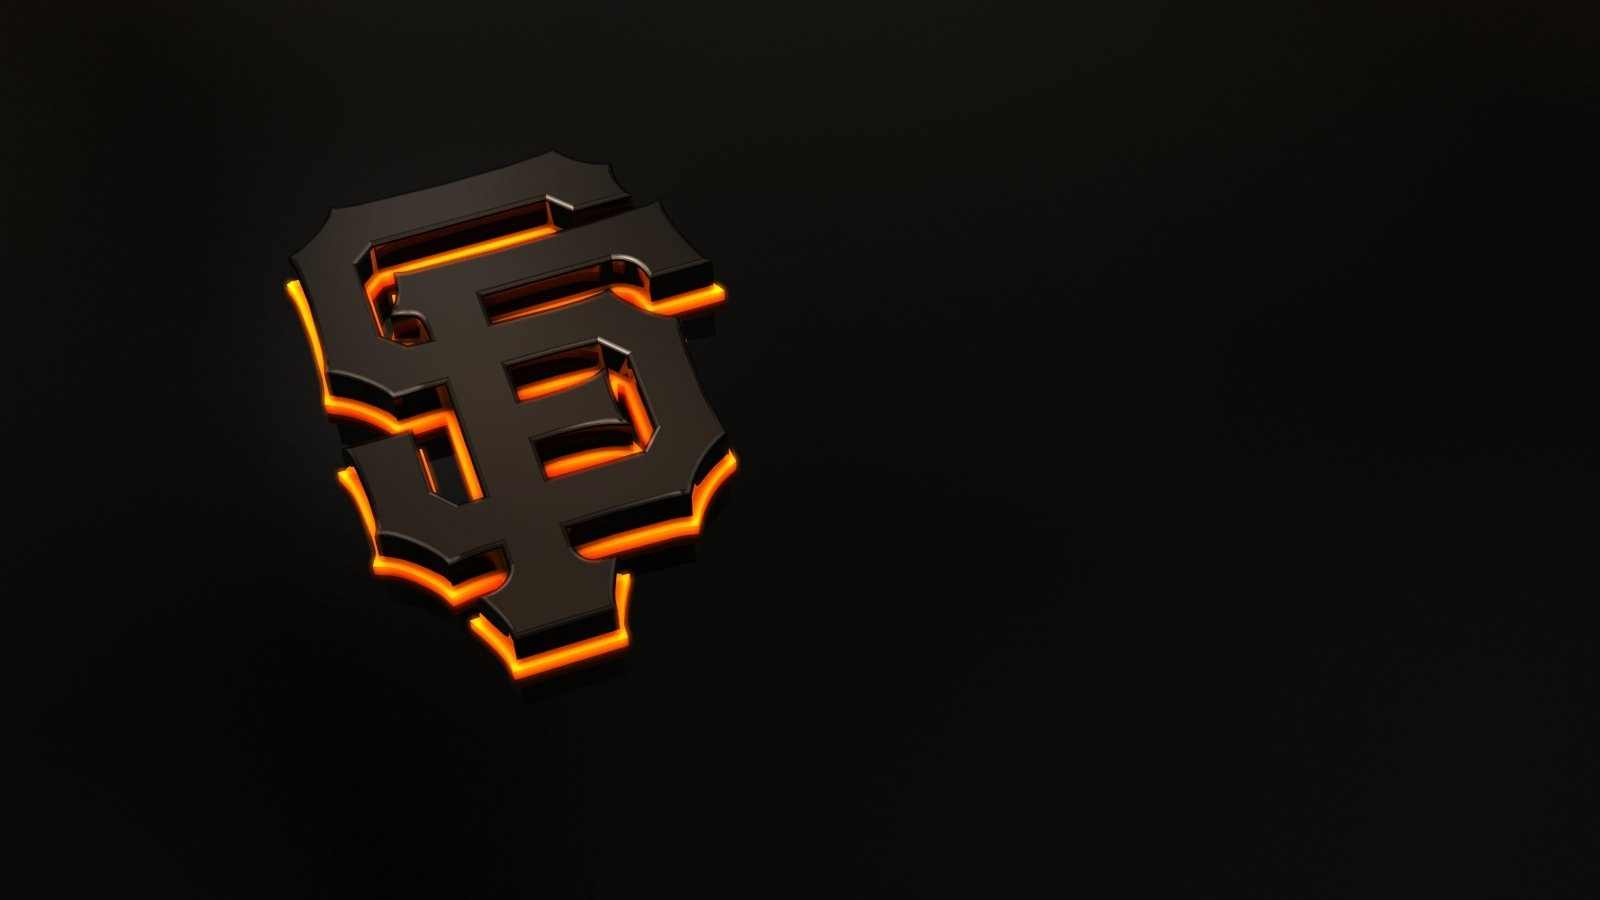 10 Top San Francisco Giants Wallpaper Hd FULL HD 1080p For PC Desktop